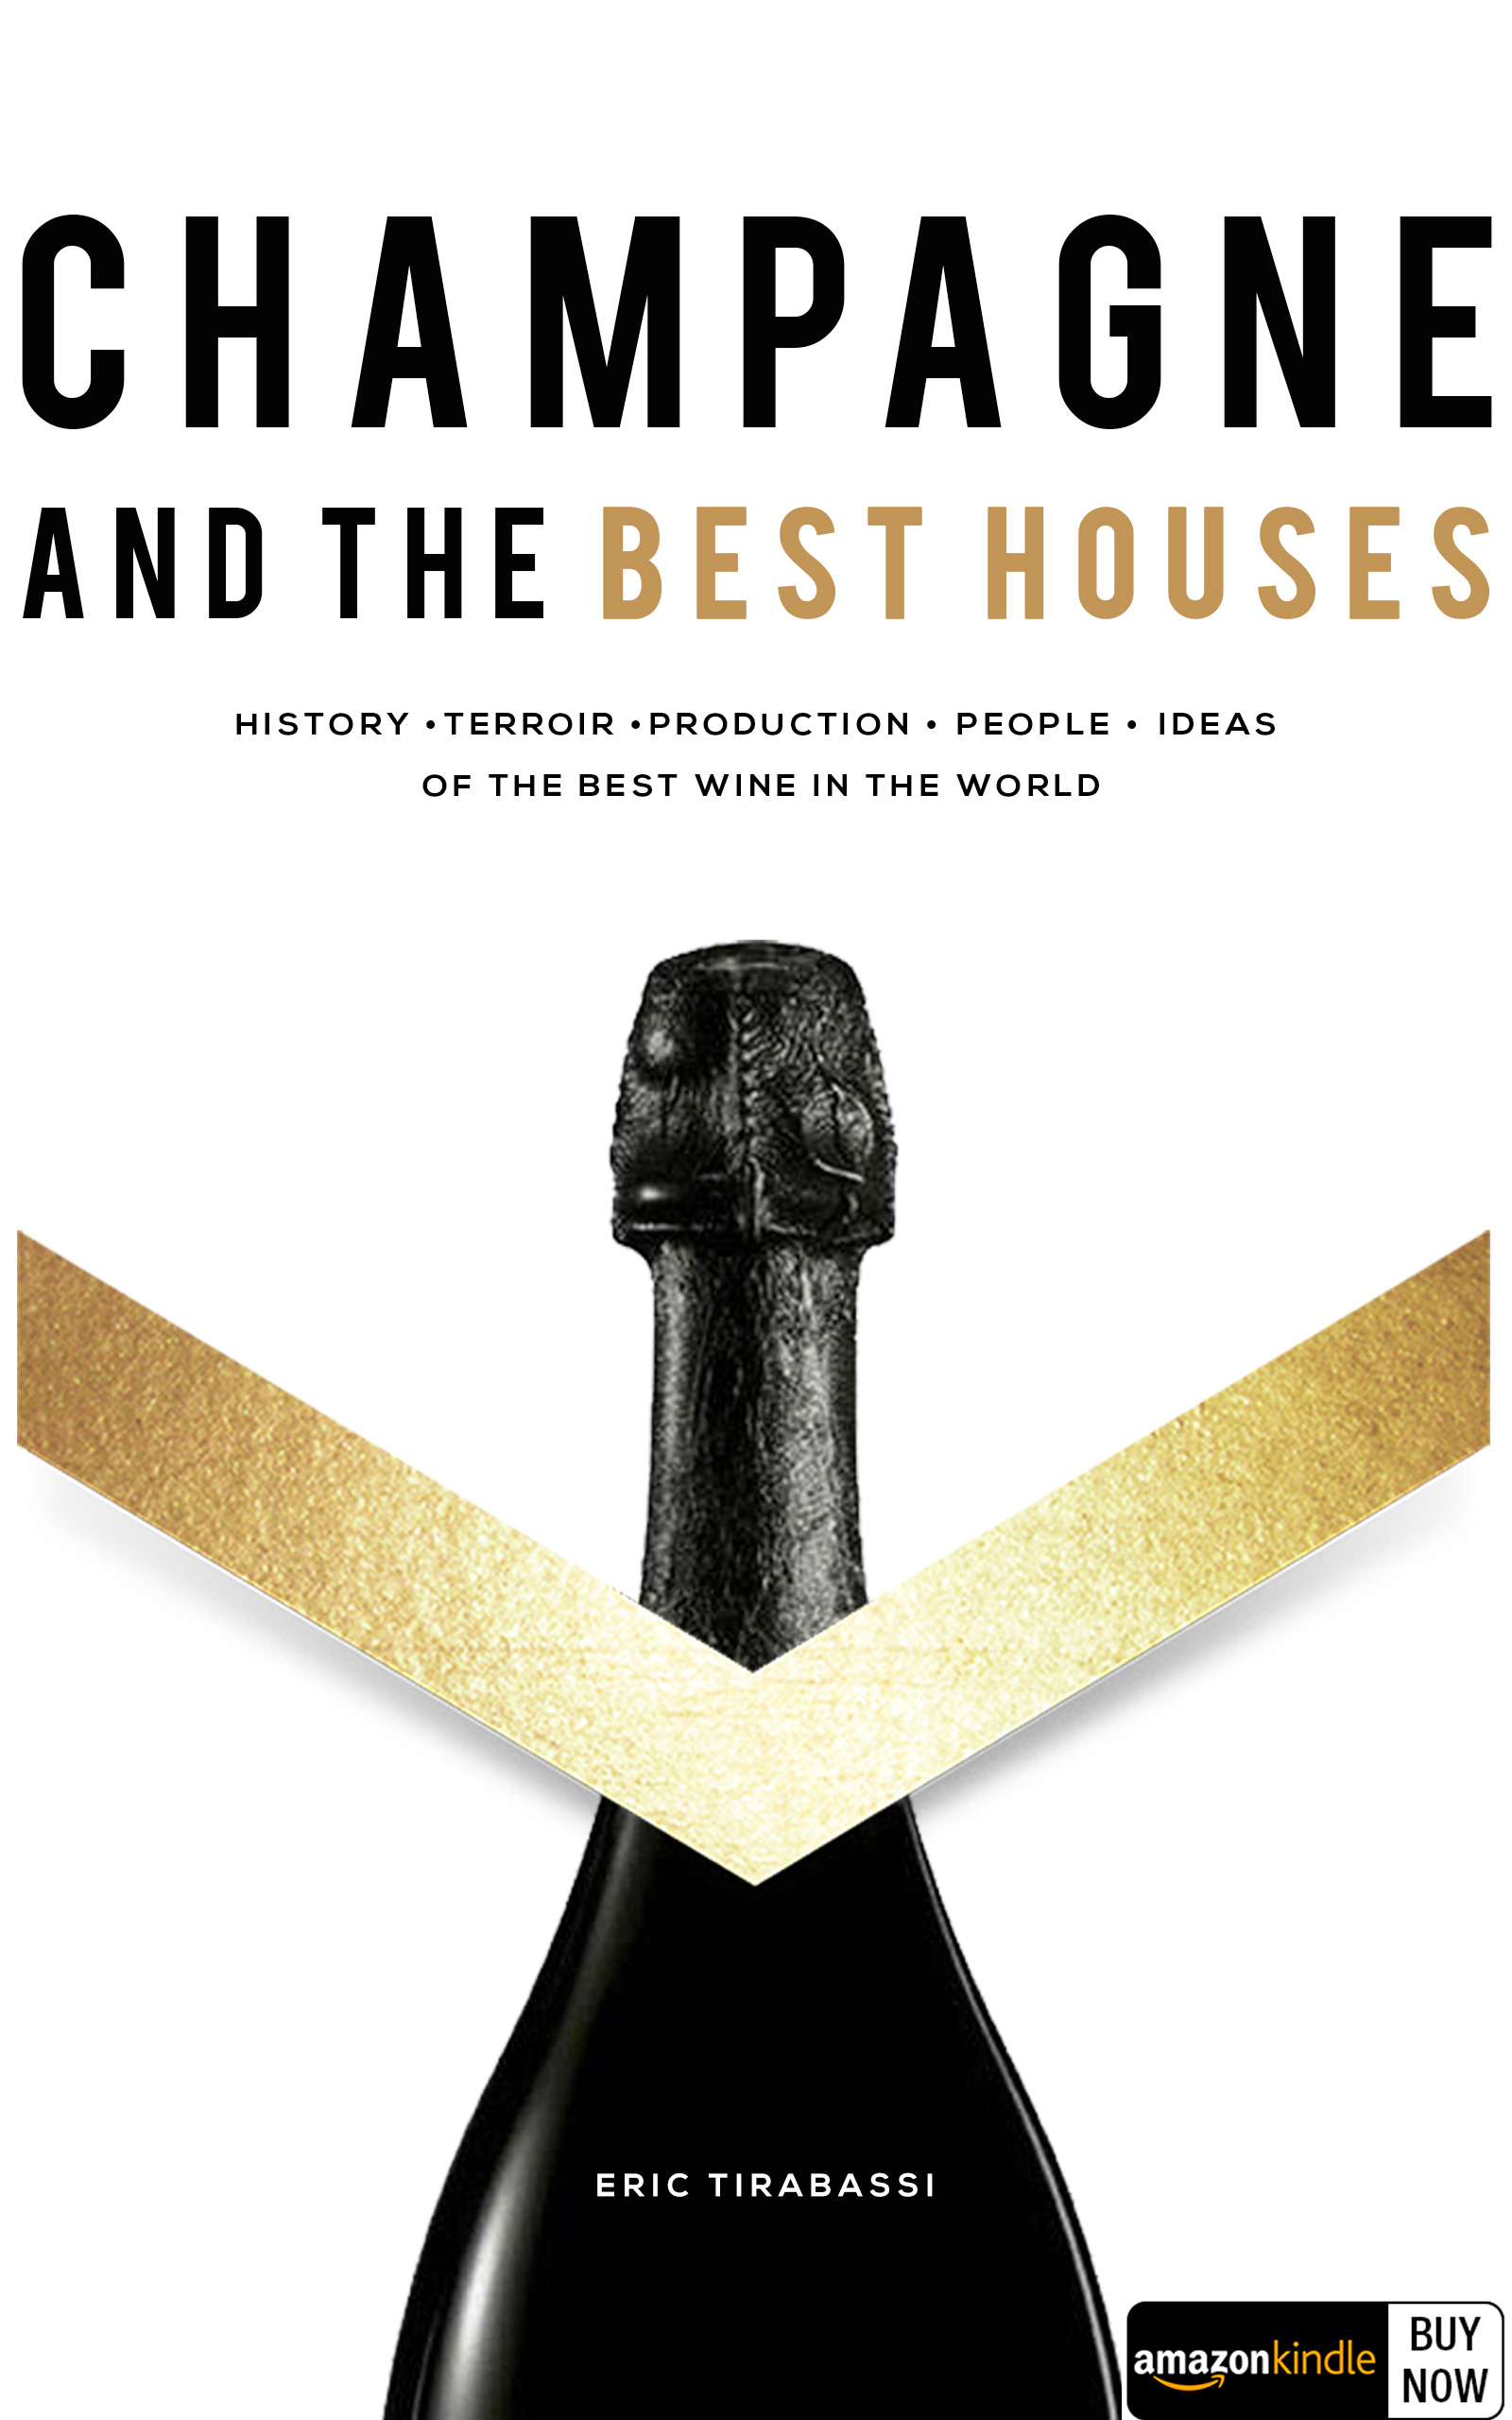 Guide to Champagne and the Best Houses